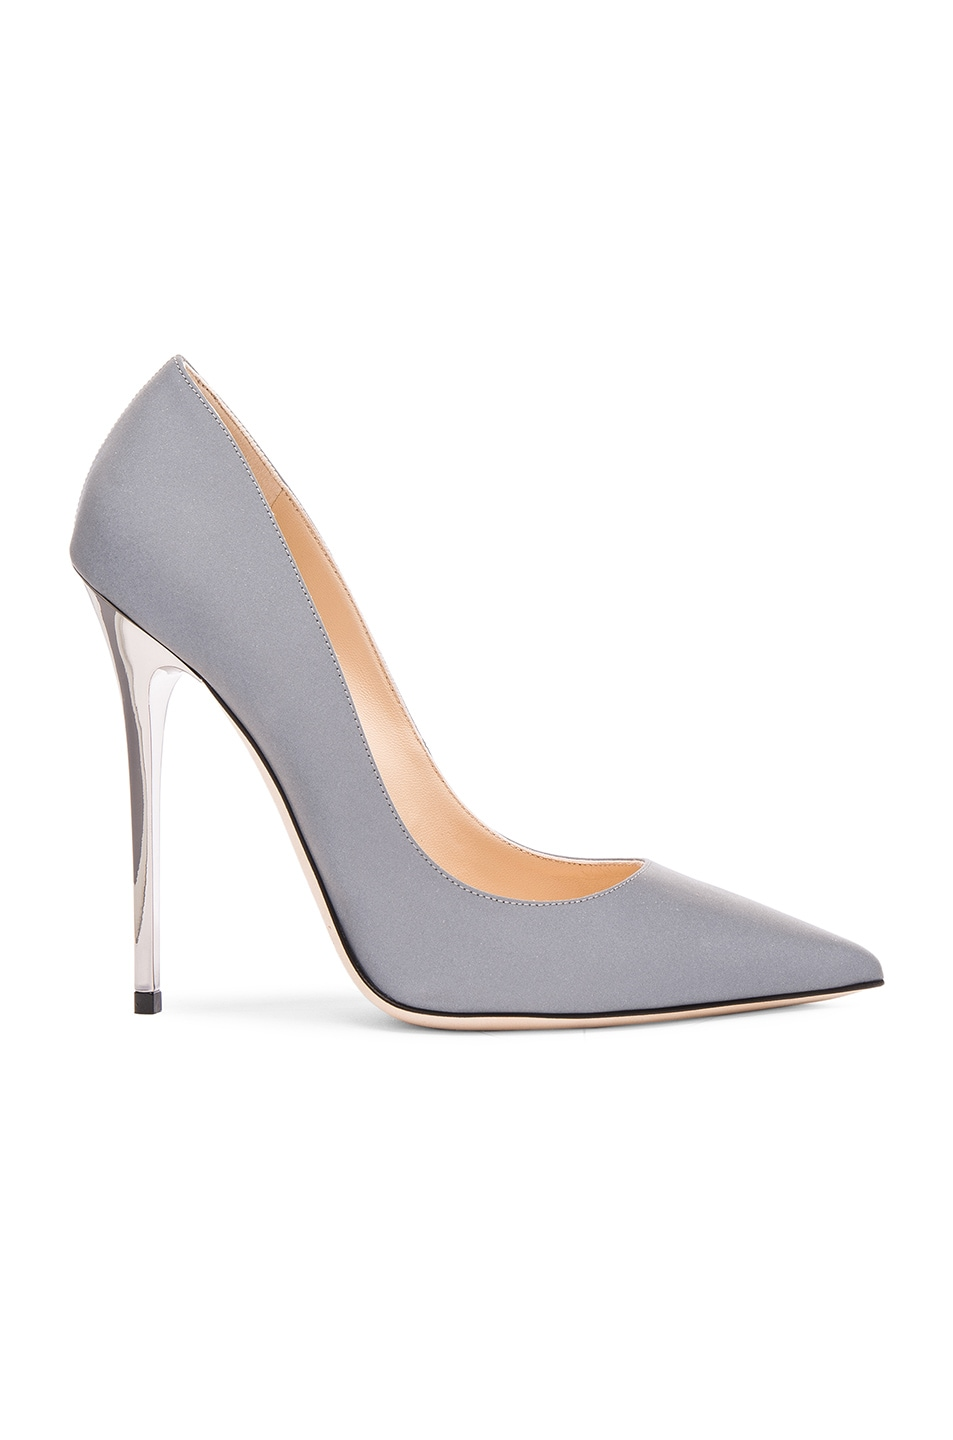 Image 1 of Jimmy Choo Anouk Reflective Pumps in Silver